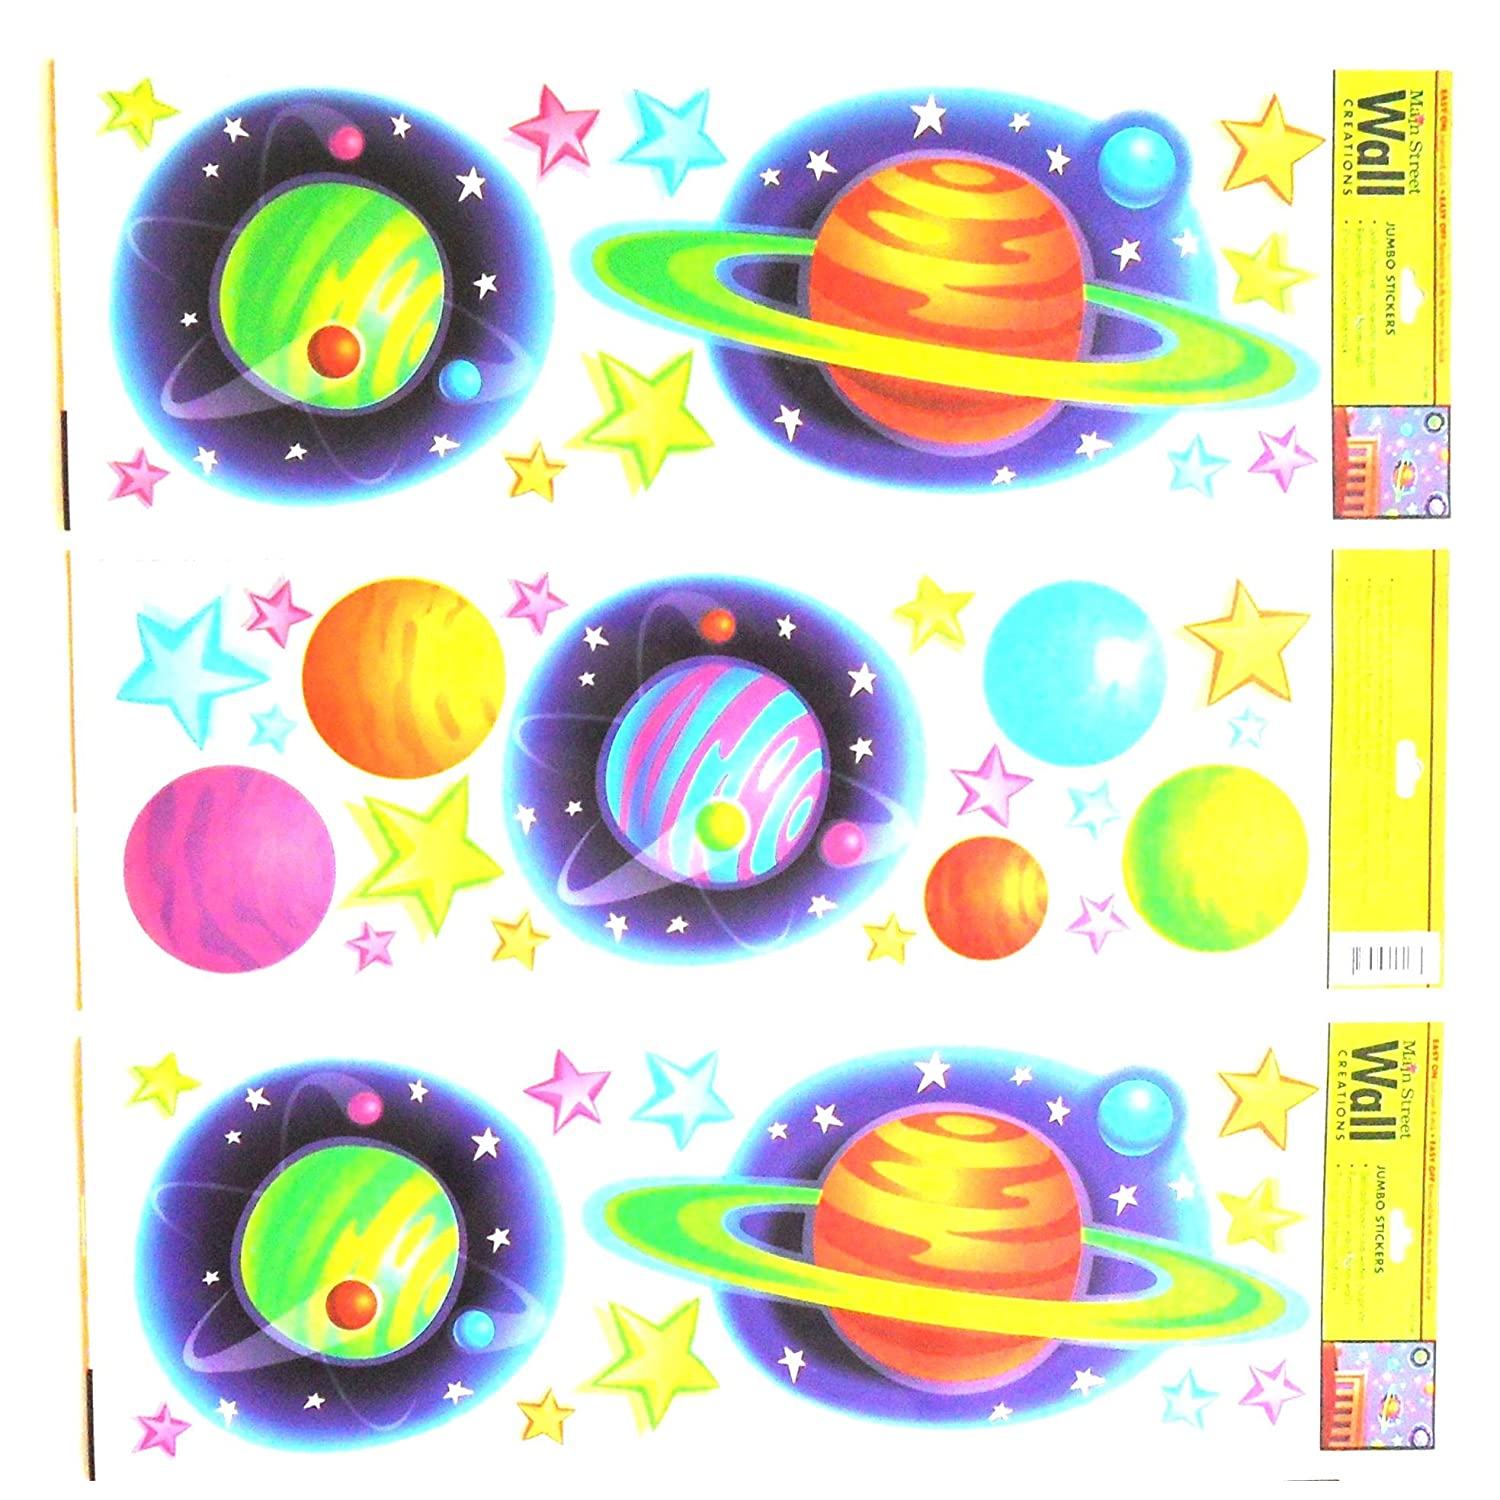 Wall Stickers for Kids or Adults Art Applique Set of 3 Colorful Planets Sticker Sets